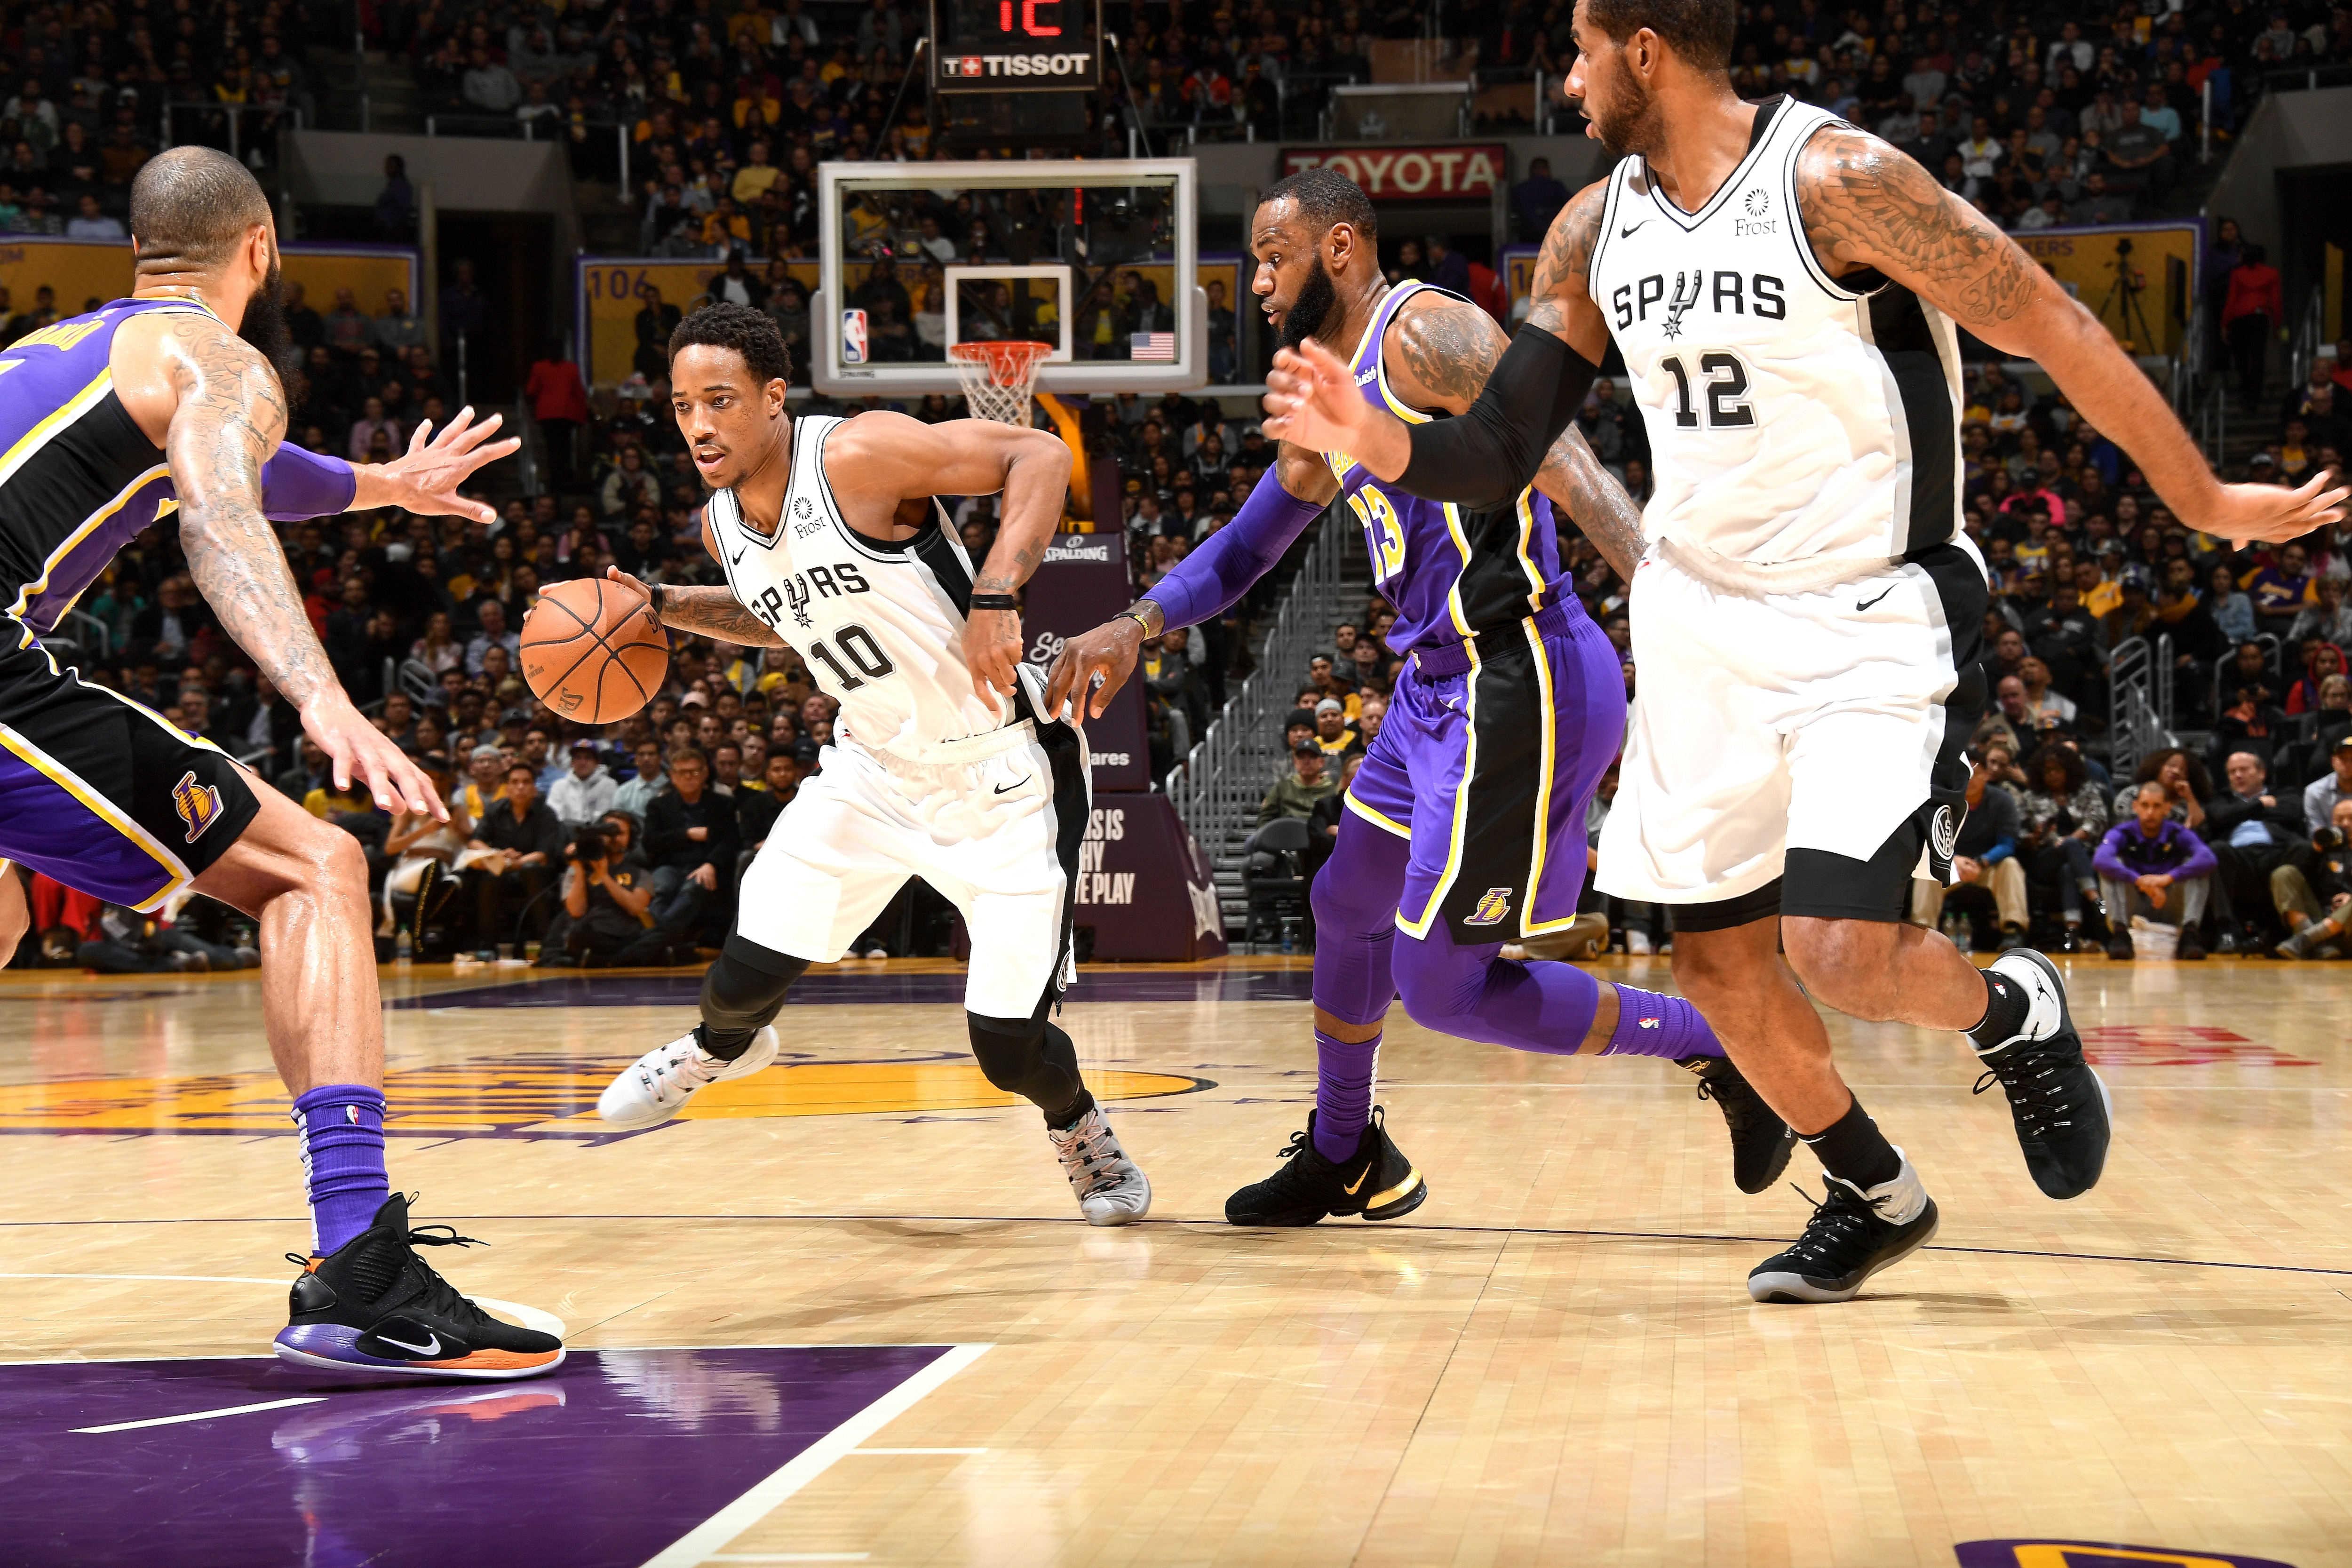 Photos from Wednesday's game versus the Los Angeles Lakers.